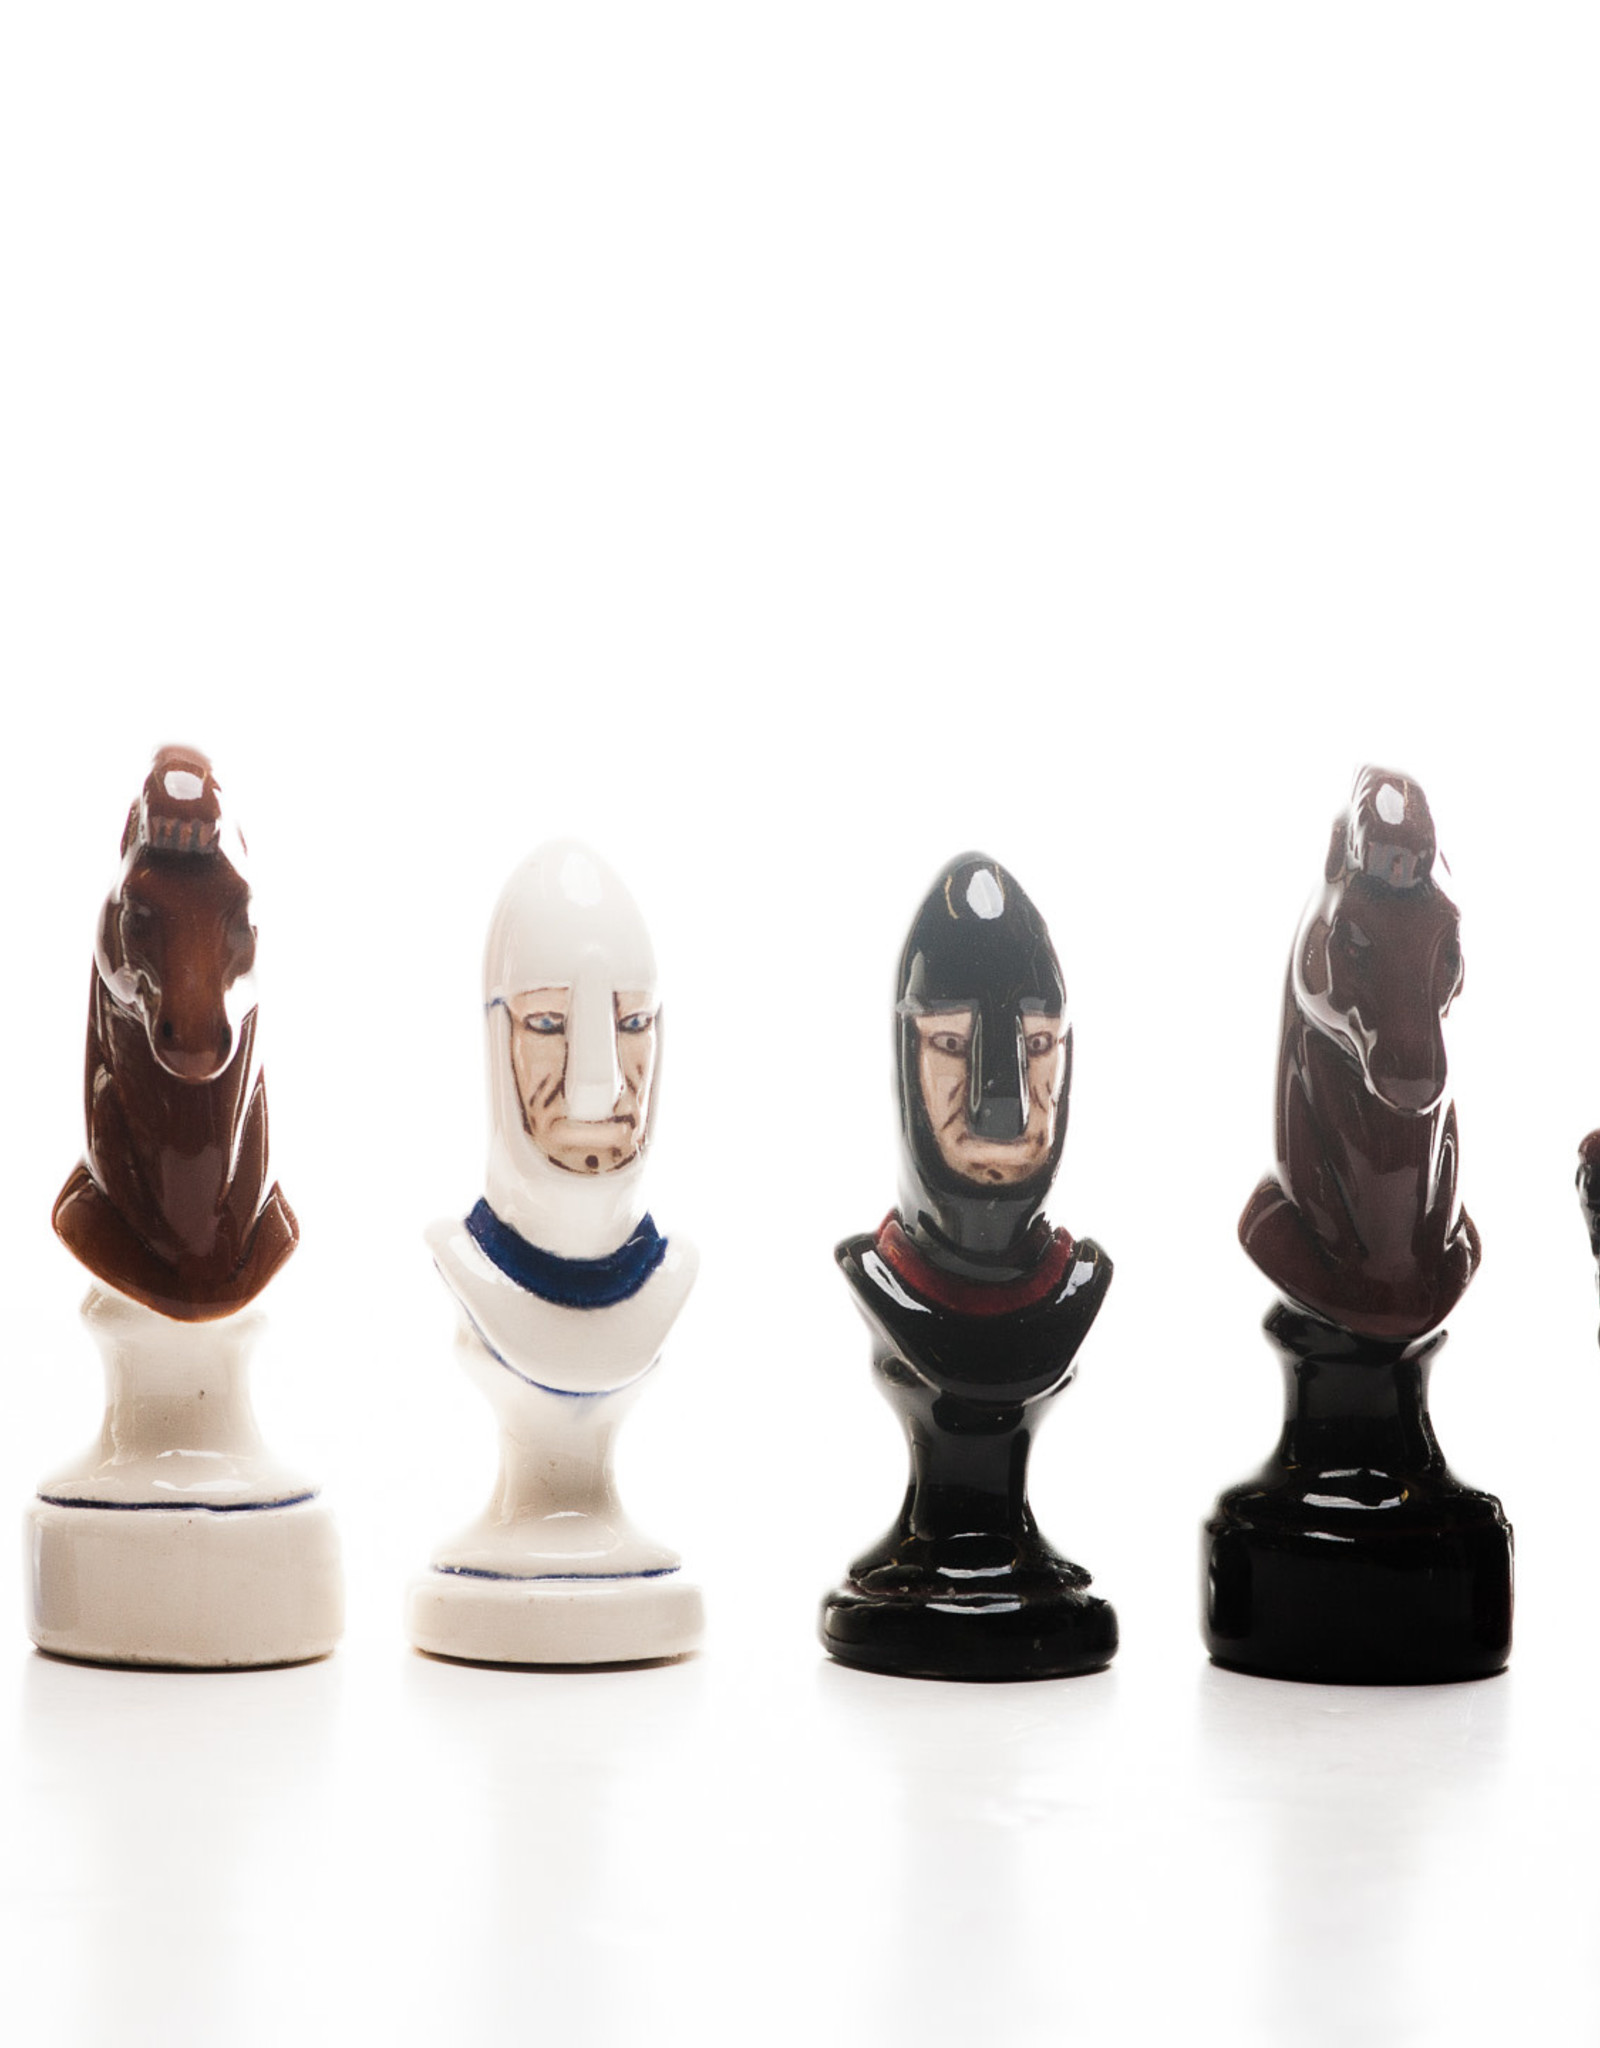 Lawrence & Scott Master Series Handcrafted Chess Set